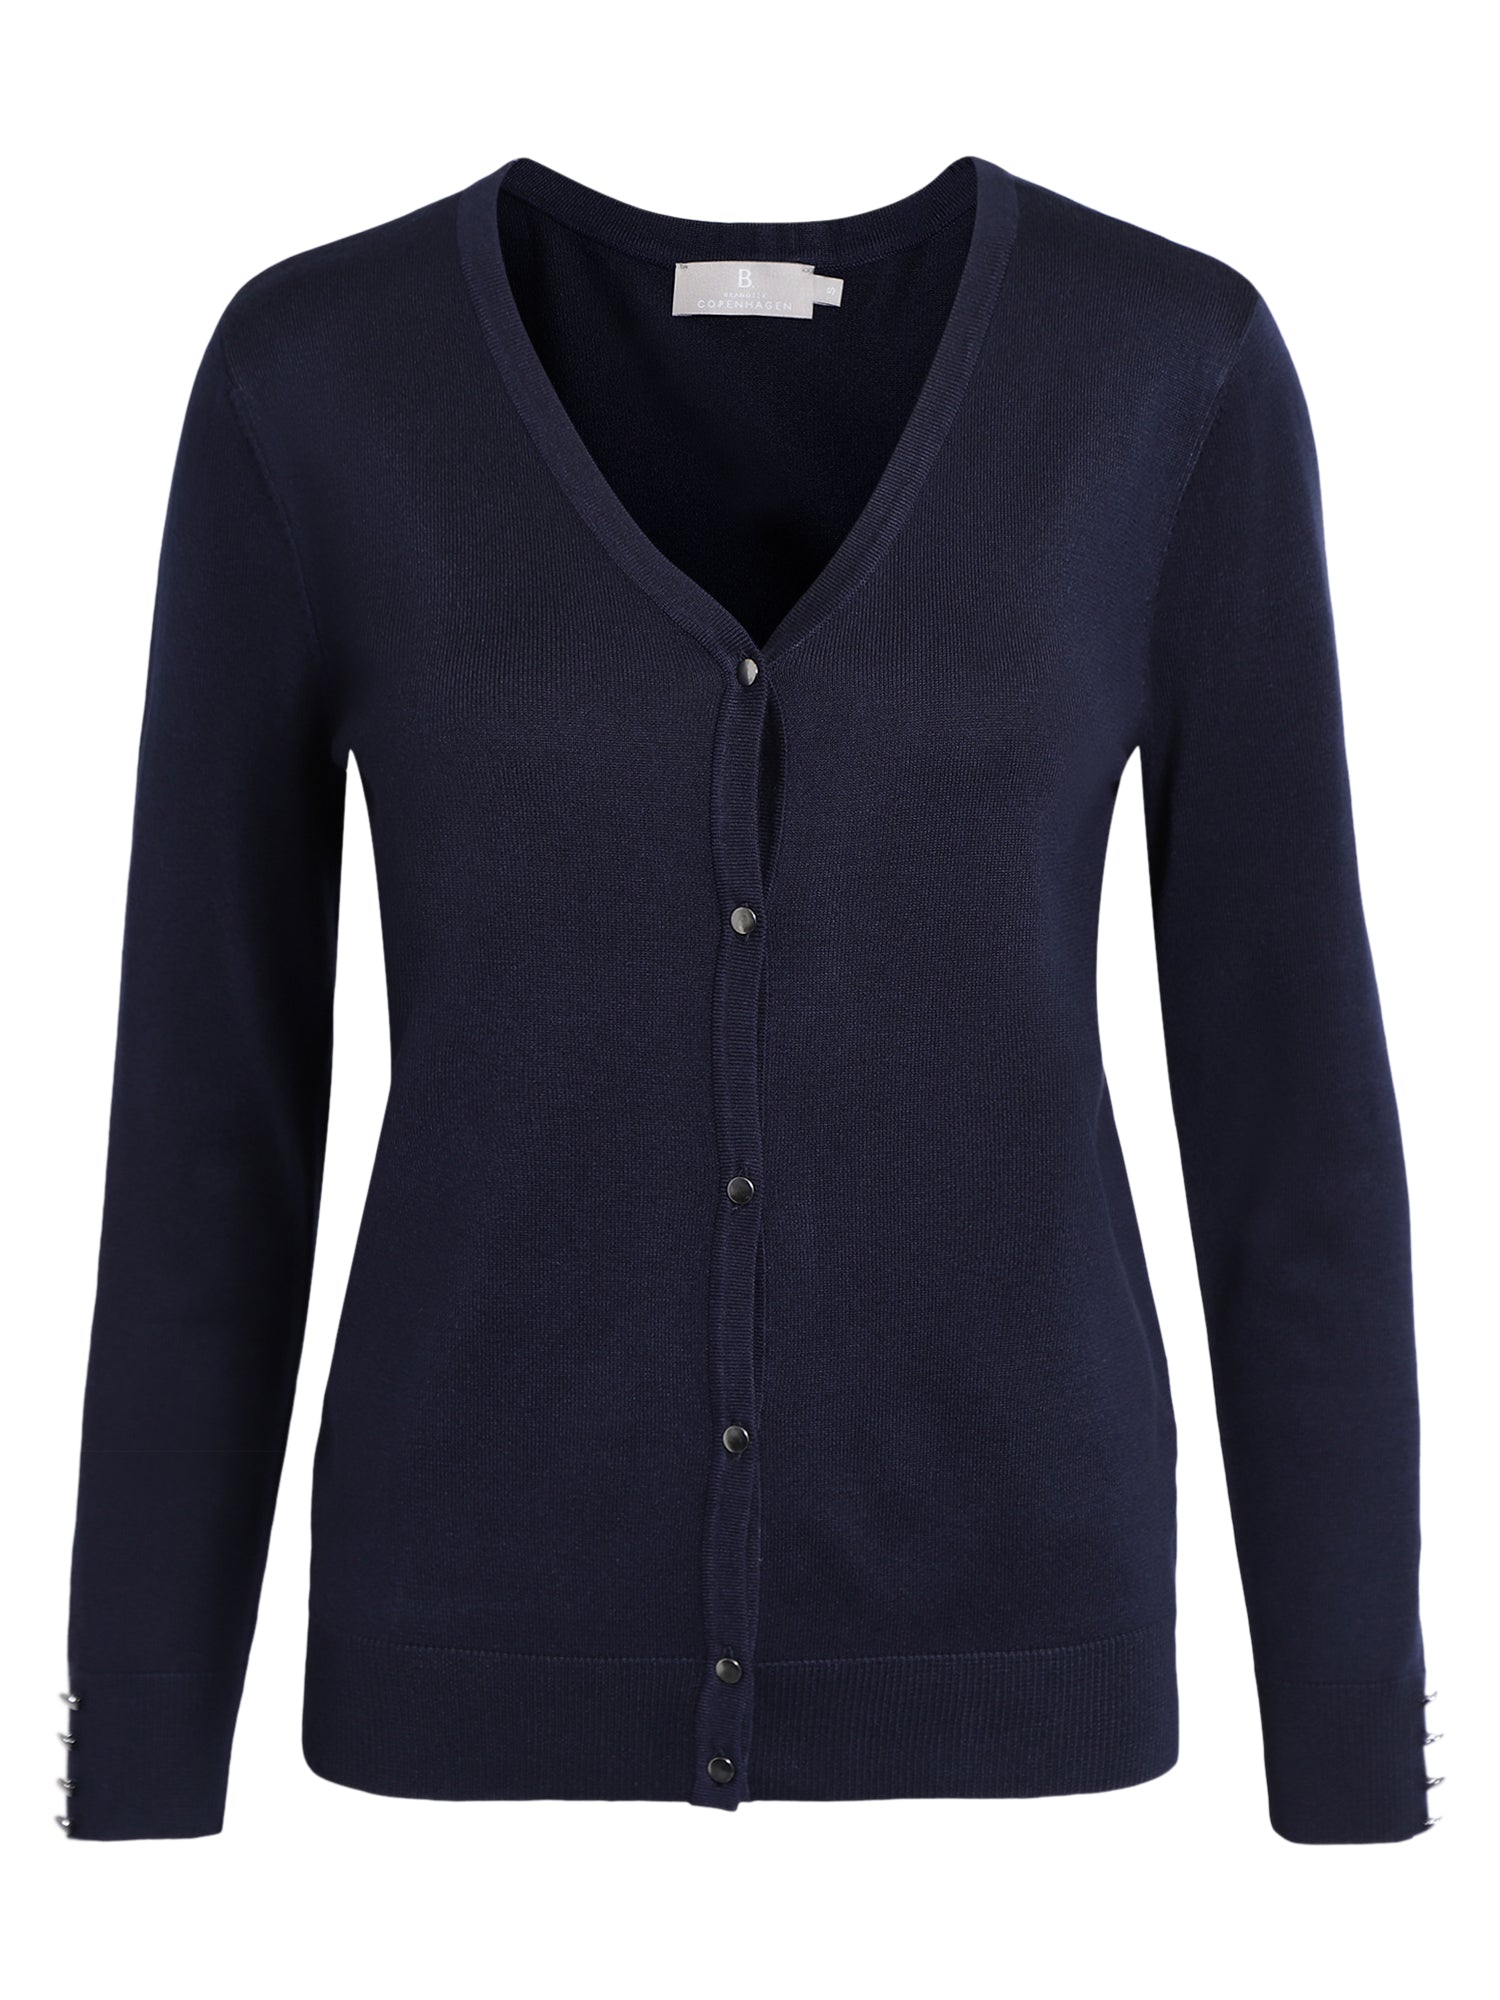 Image of   Cardigan med V-halsudskæring - Midnight Blue